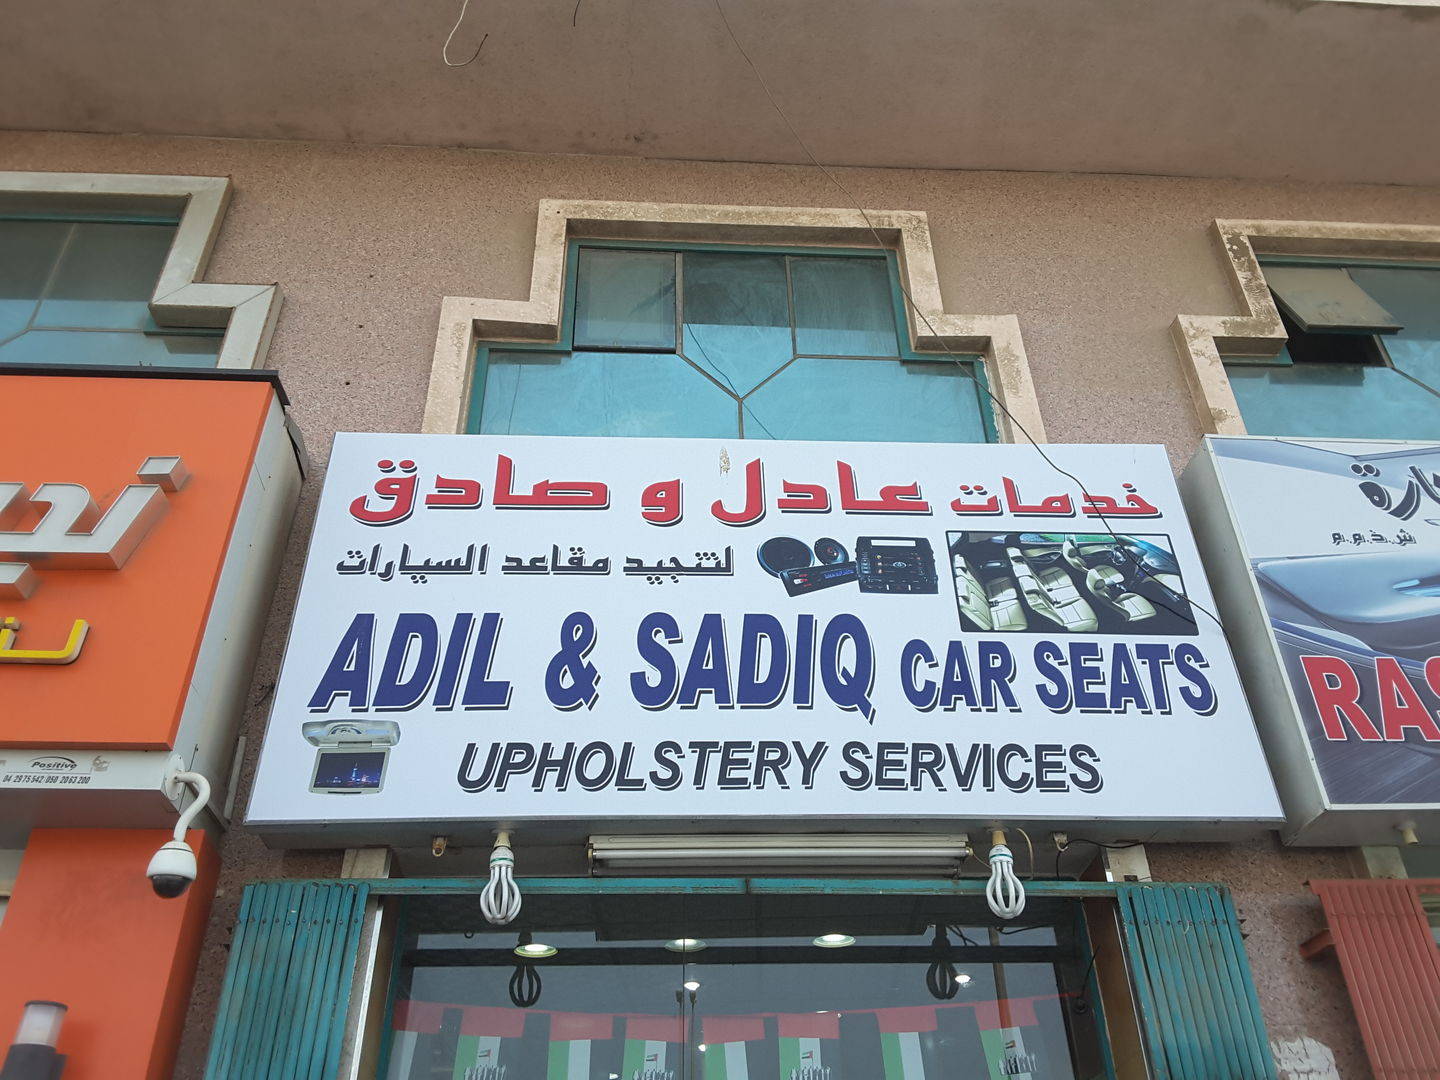 HiDubai-business-adil-sadiq-car-seats-upholstery-services-transport-vehicle-services-auto-spare-parts-accessories-ayal-nasir-dubai-2